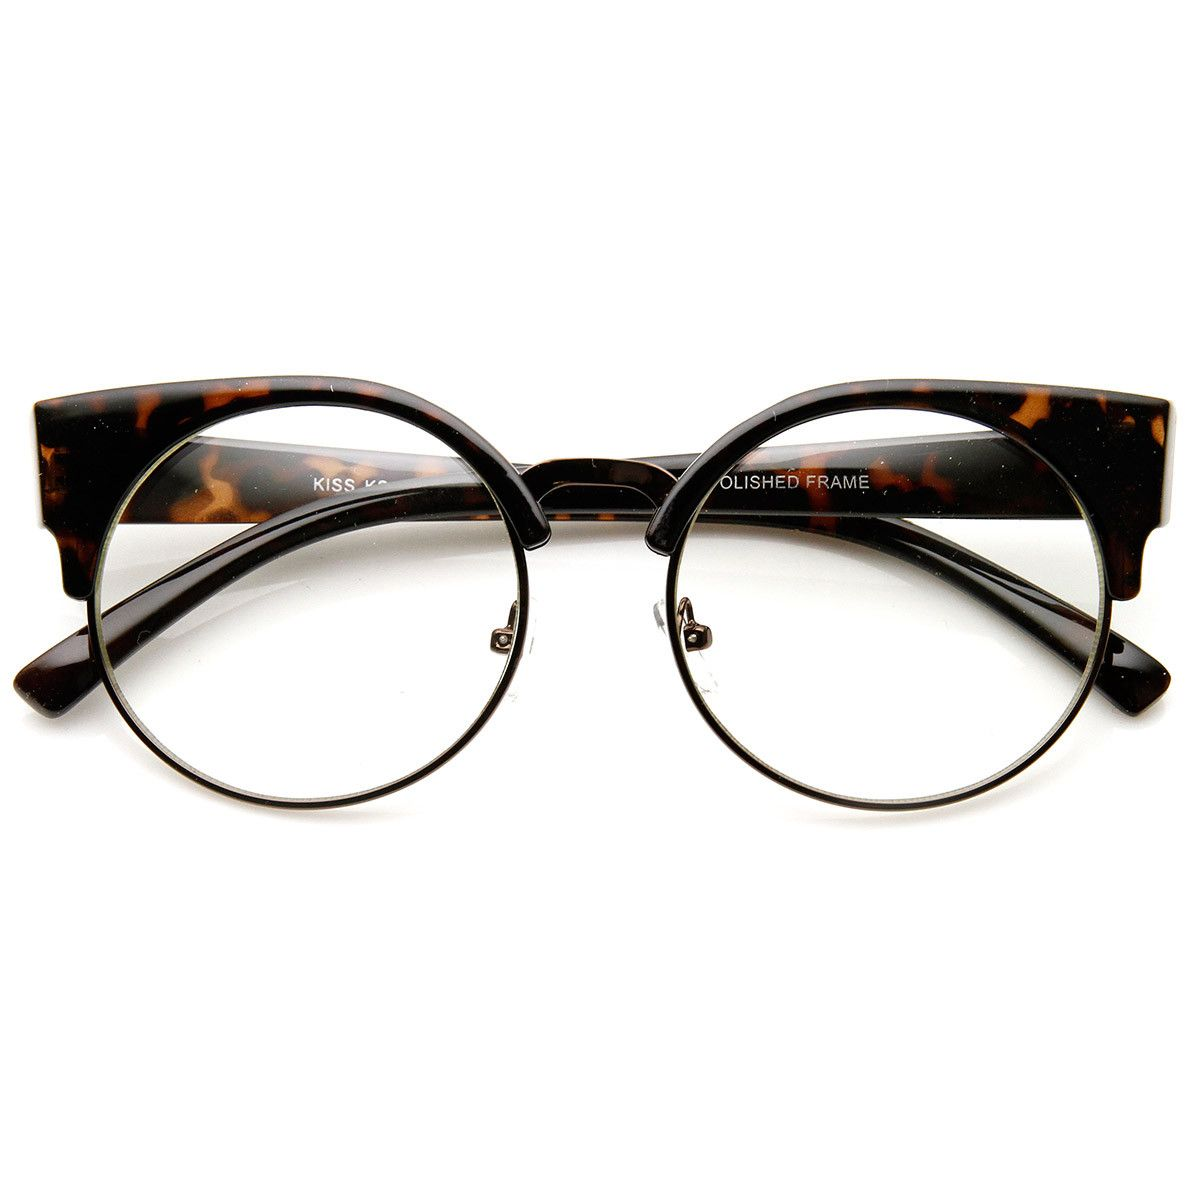 76d89e513488 Unique round half frame that features high pointed temples creating an  elegant cat eye silhouette. Frame is made with an acetate brow and arms,  metal wire ...